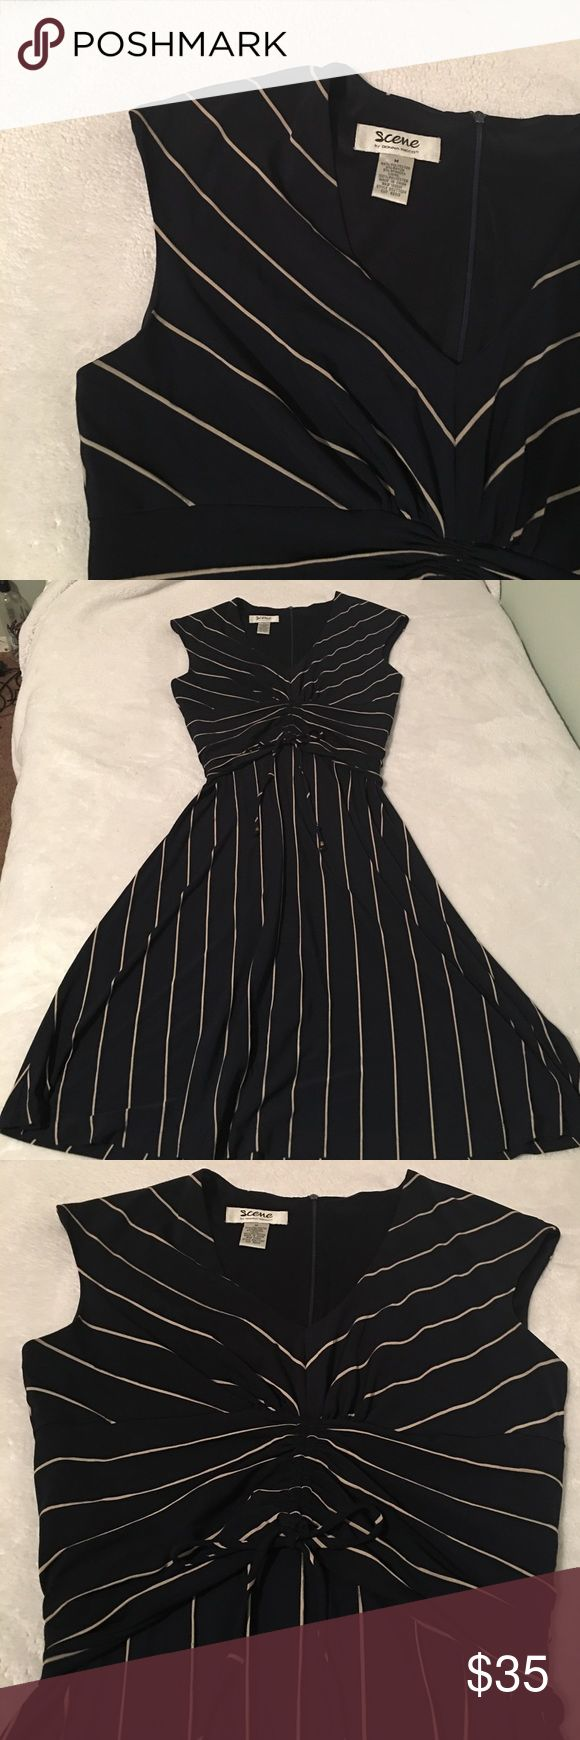 Donna Ricco Flattering Dress A very modest and classy dress, the material is a bit thick and heavy. The middle, right below the bust has an adjustment pull string. Has a back zipper. Could possibly fit a L. The color is a Dark Navy Blue, not Black. Donna Ricco Dresses